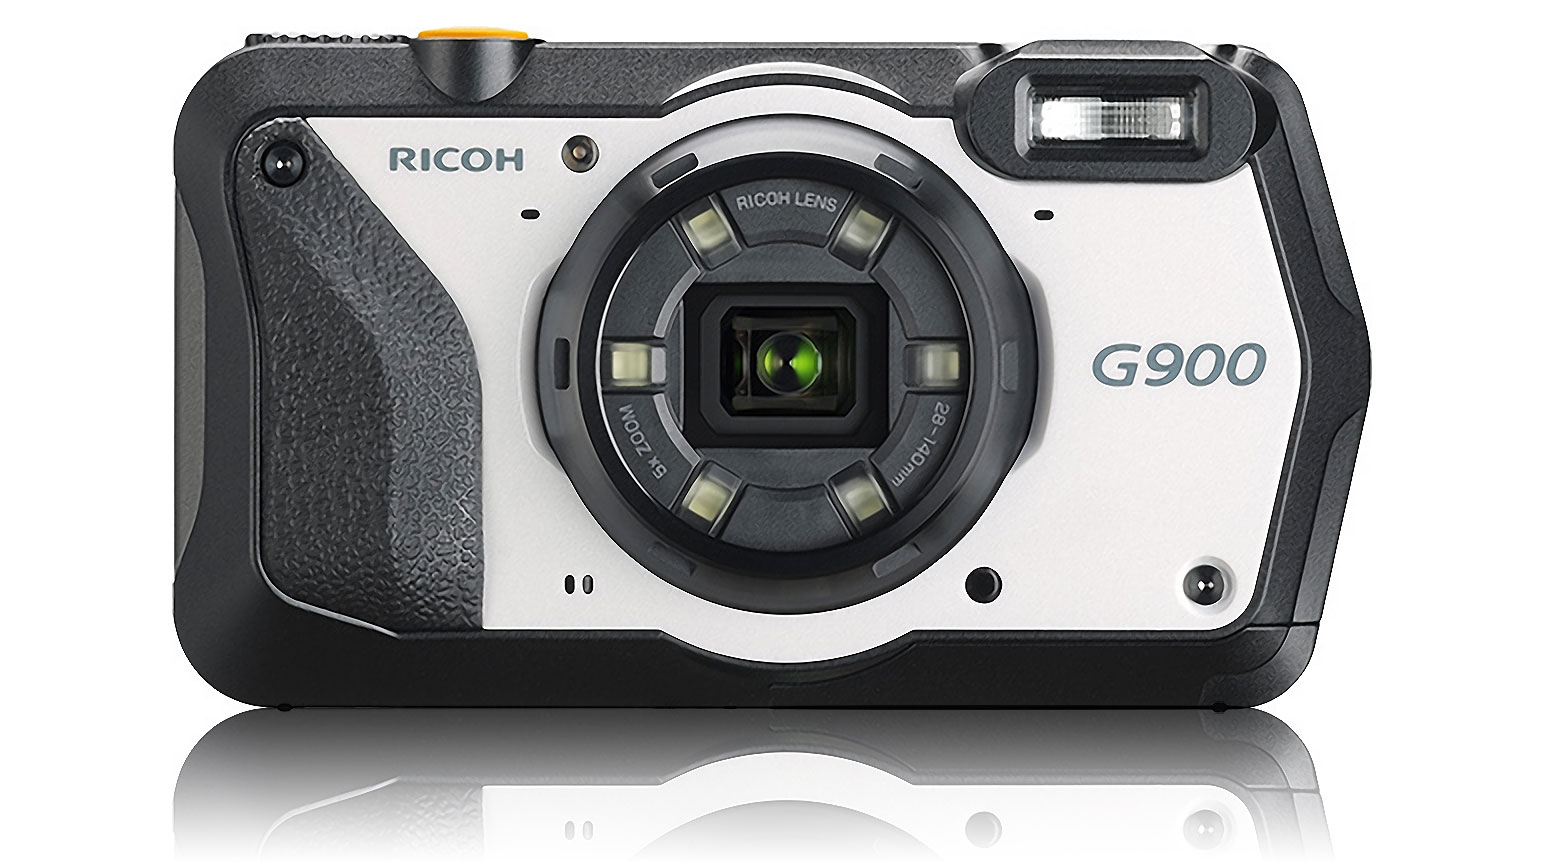 Ricoh launches heavy-duty G900 compact for industrial use